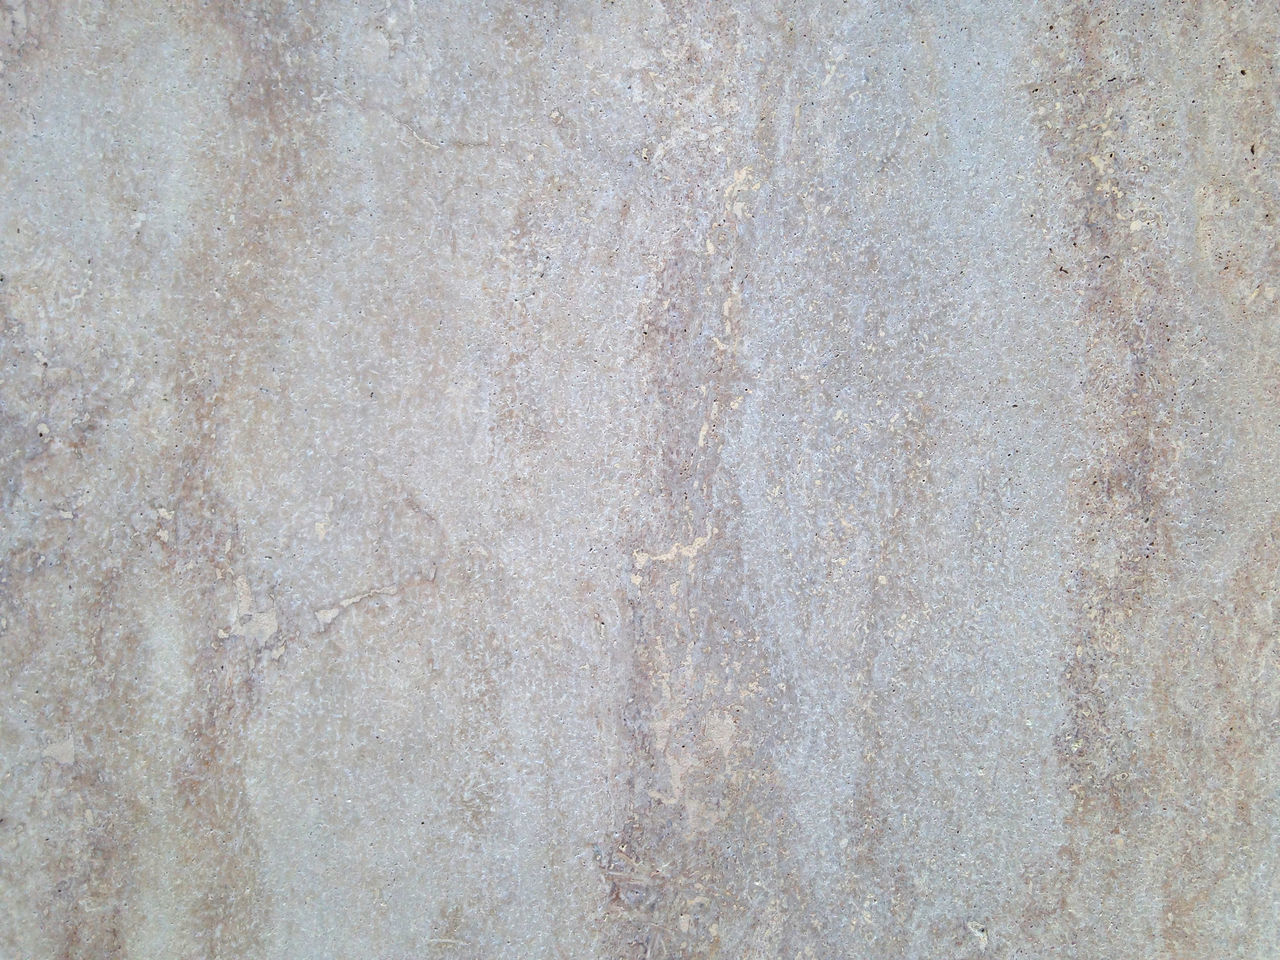 backgrounds, textured, stone material, gray, abstract, pattern, marble, full frame, material, architecture, wallpaper, smooth, no people, close-up, nature, outdoors, day